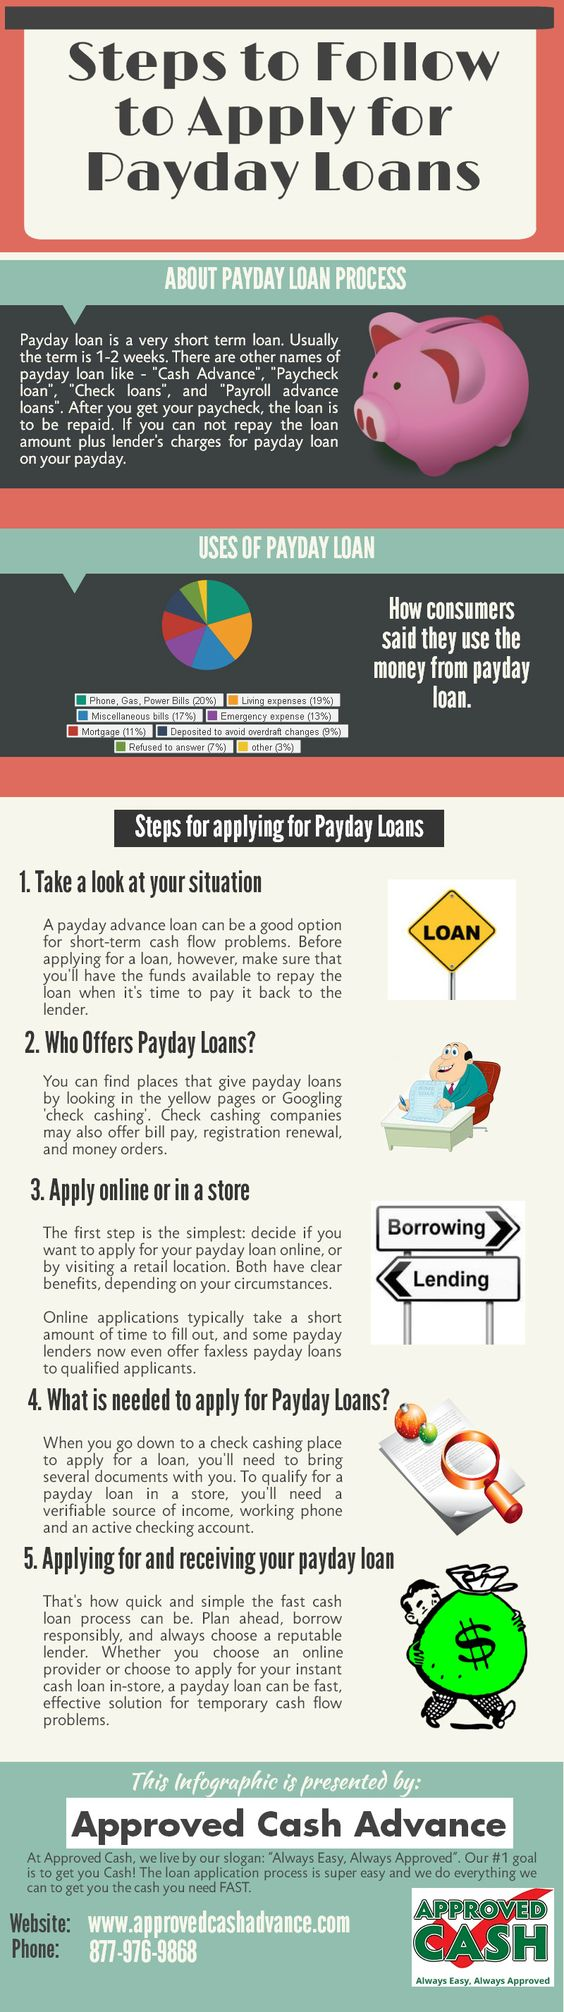 Payday loans in lexington kentucky photo 9